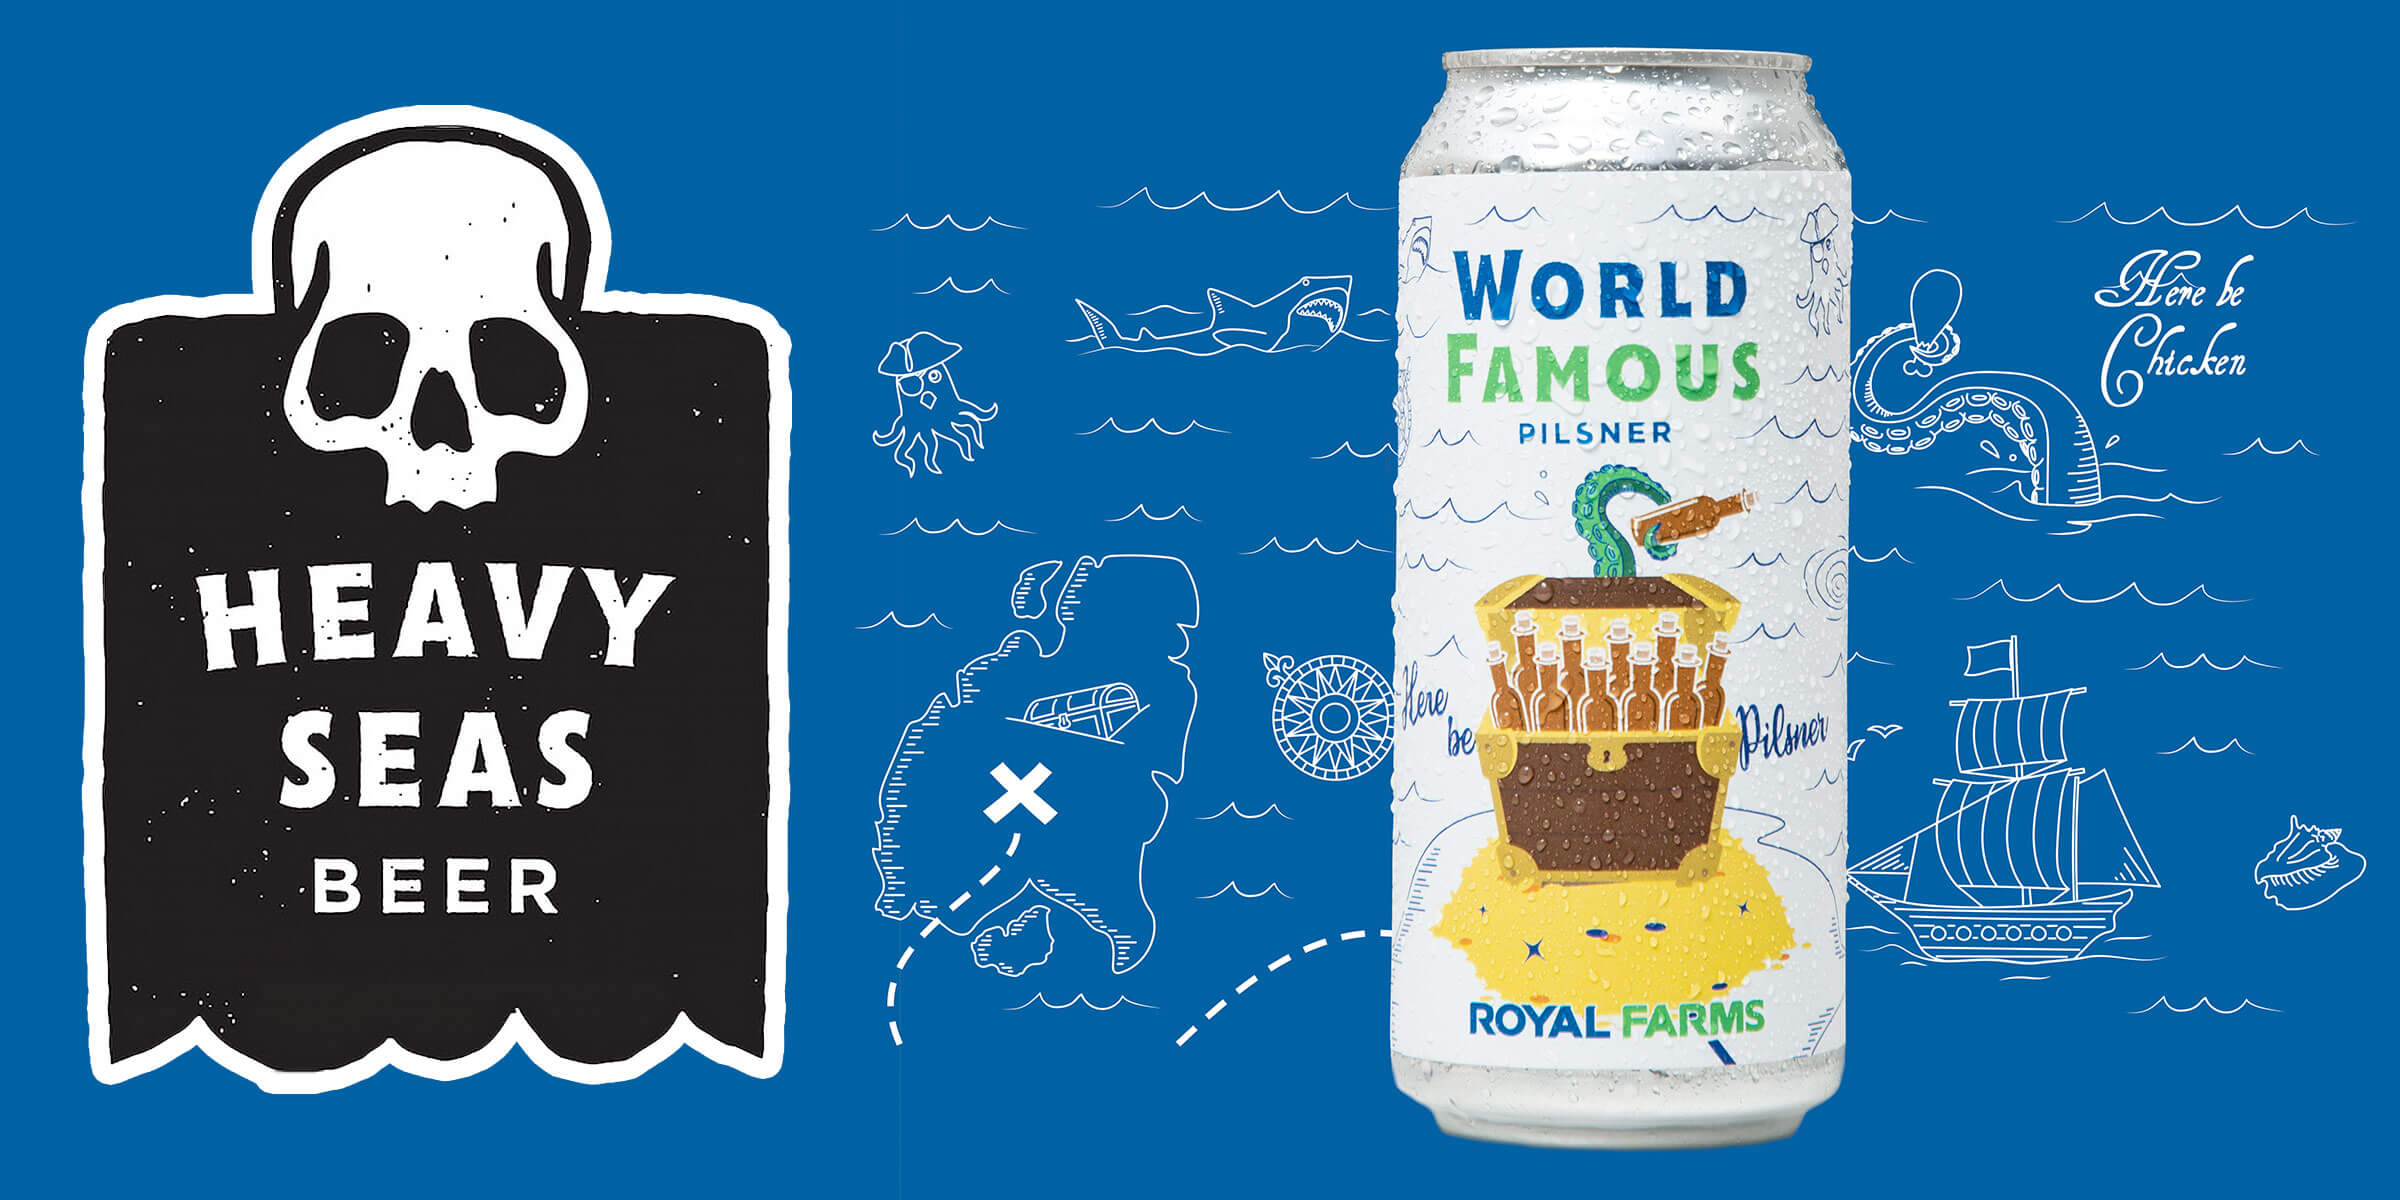 Heavy Seas Beer has released World Famous, a Pilsner brewed in collaboration with and sold at Royal Farms locations in Maryland, Pennsylvania, and Virginia.